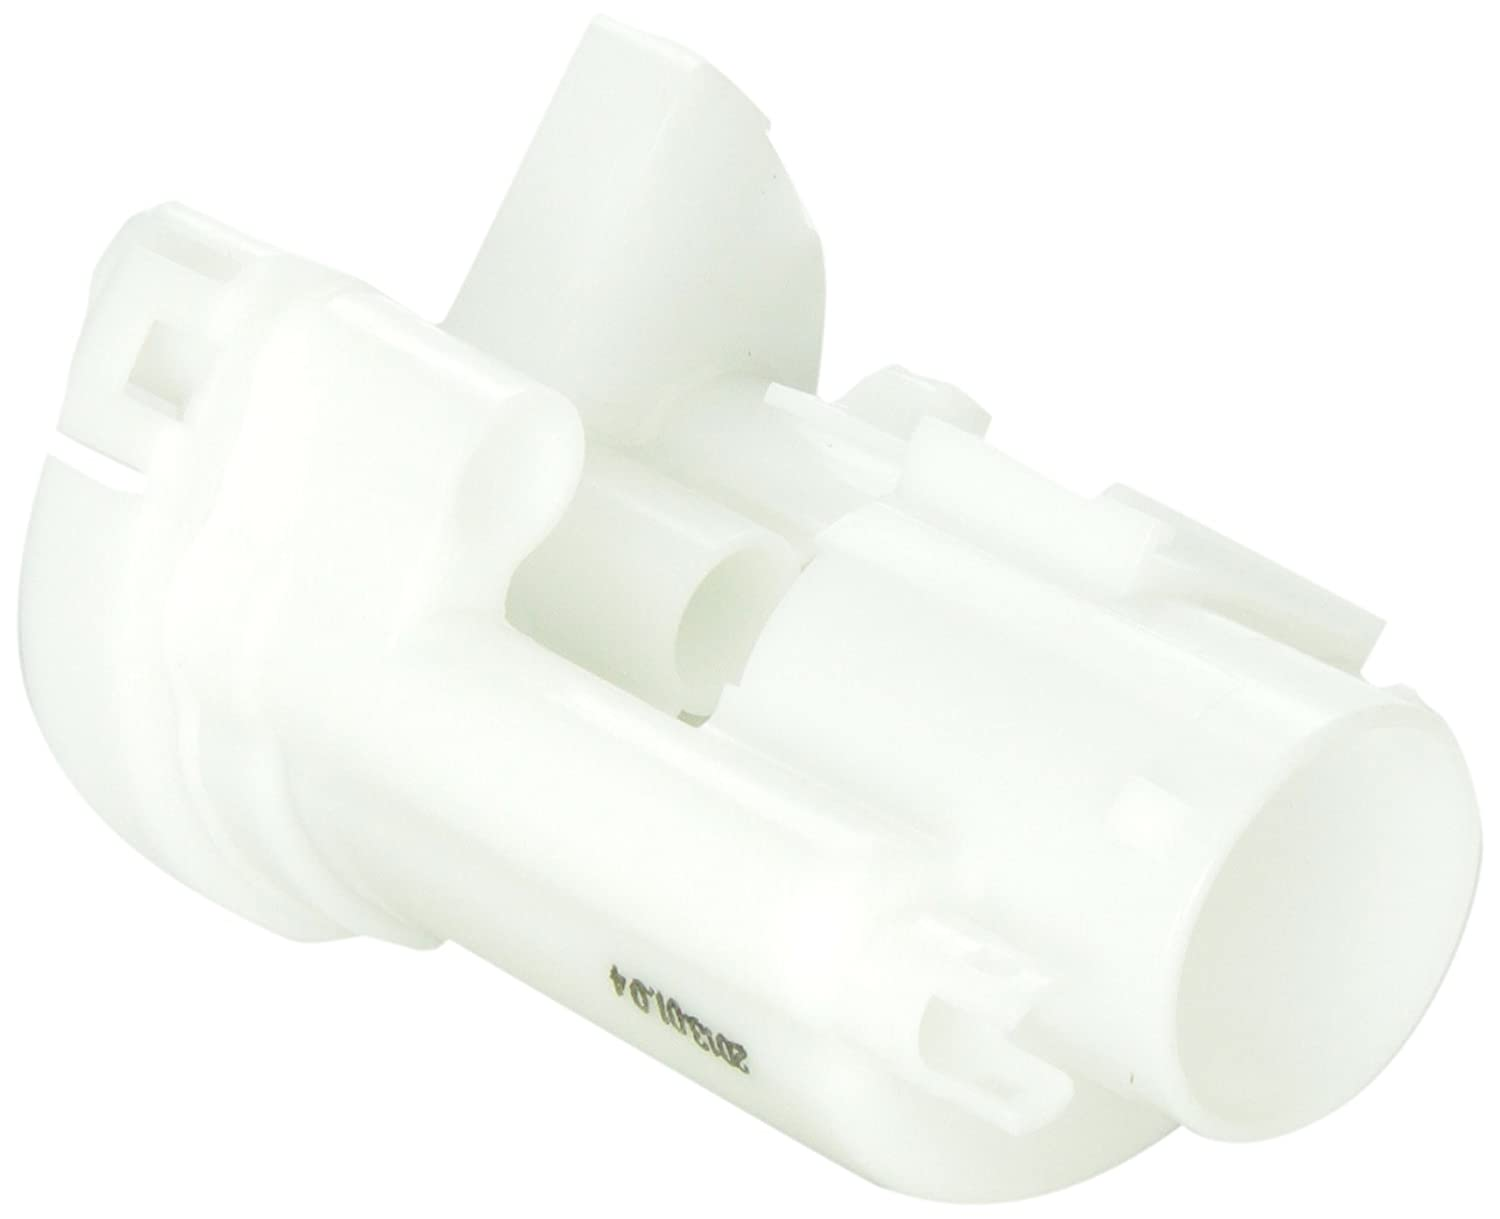 Genuine Hyundai 31112-25700 Fuel Injection Pump Filter